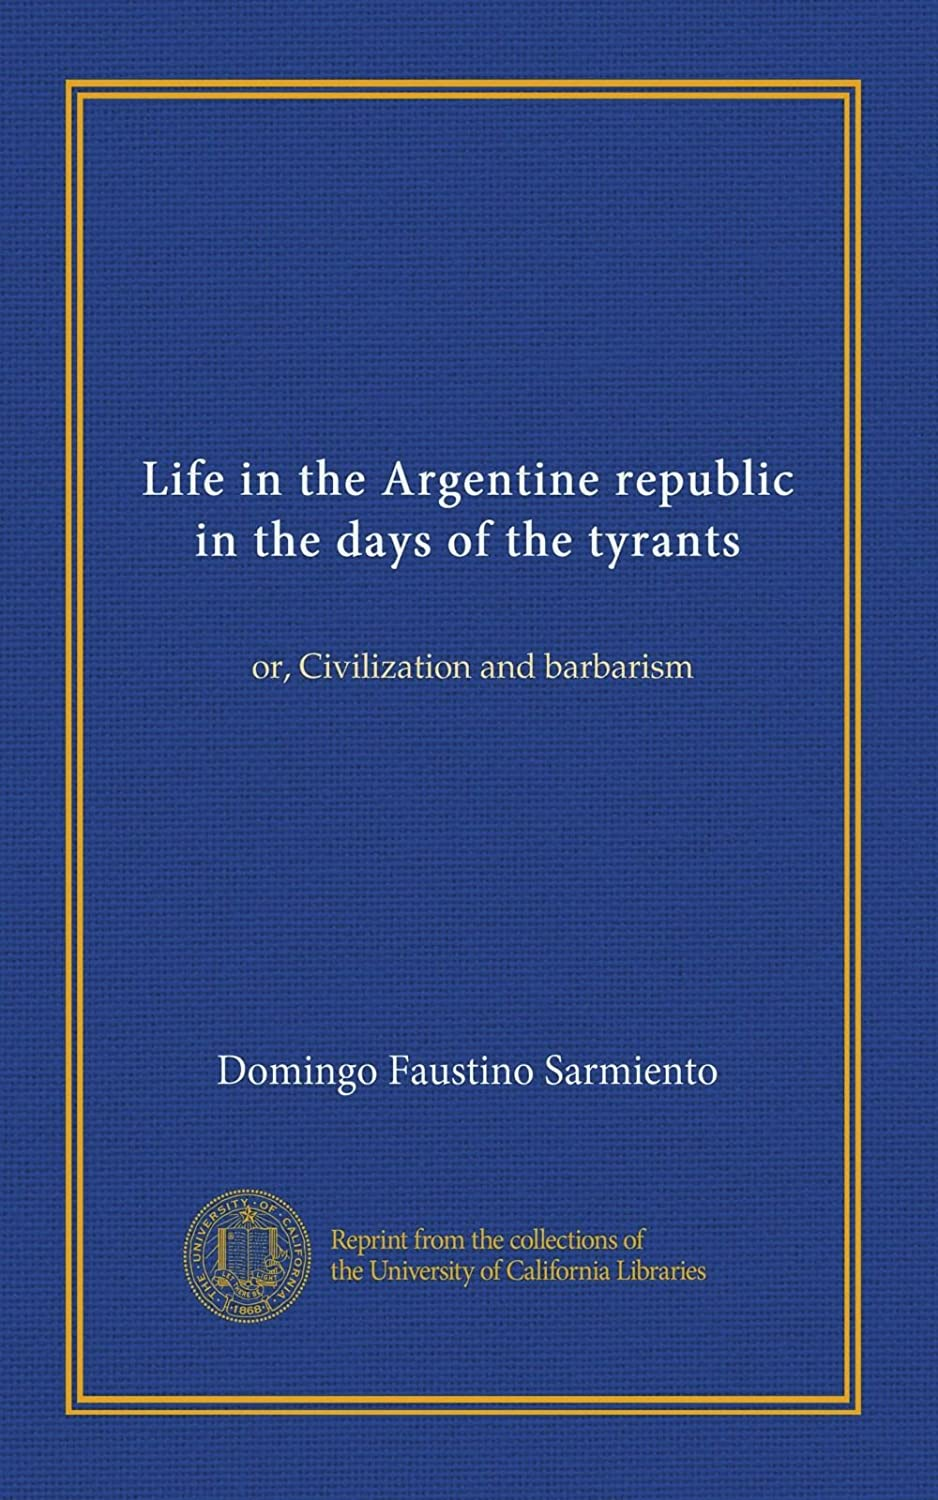 Life in the Argentine republic in the days of the tyrants: or, Civilization and barbarism